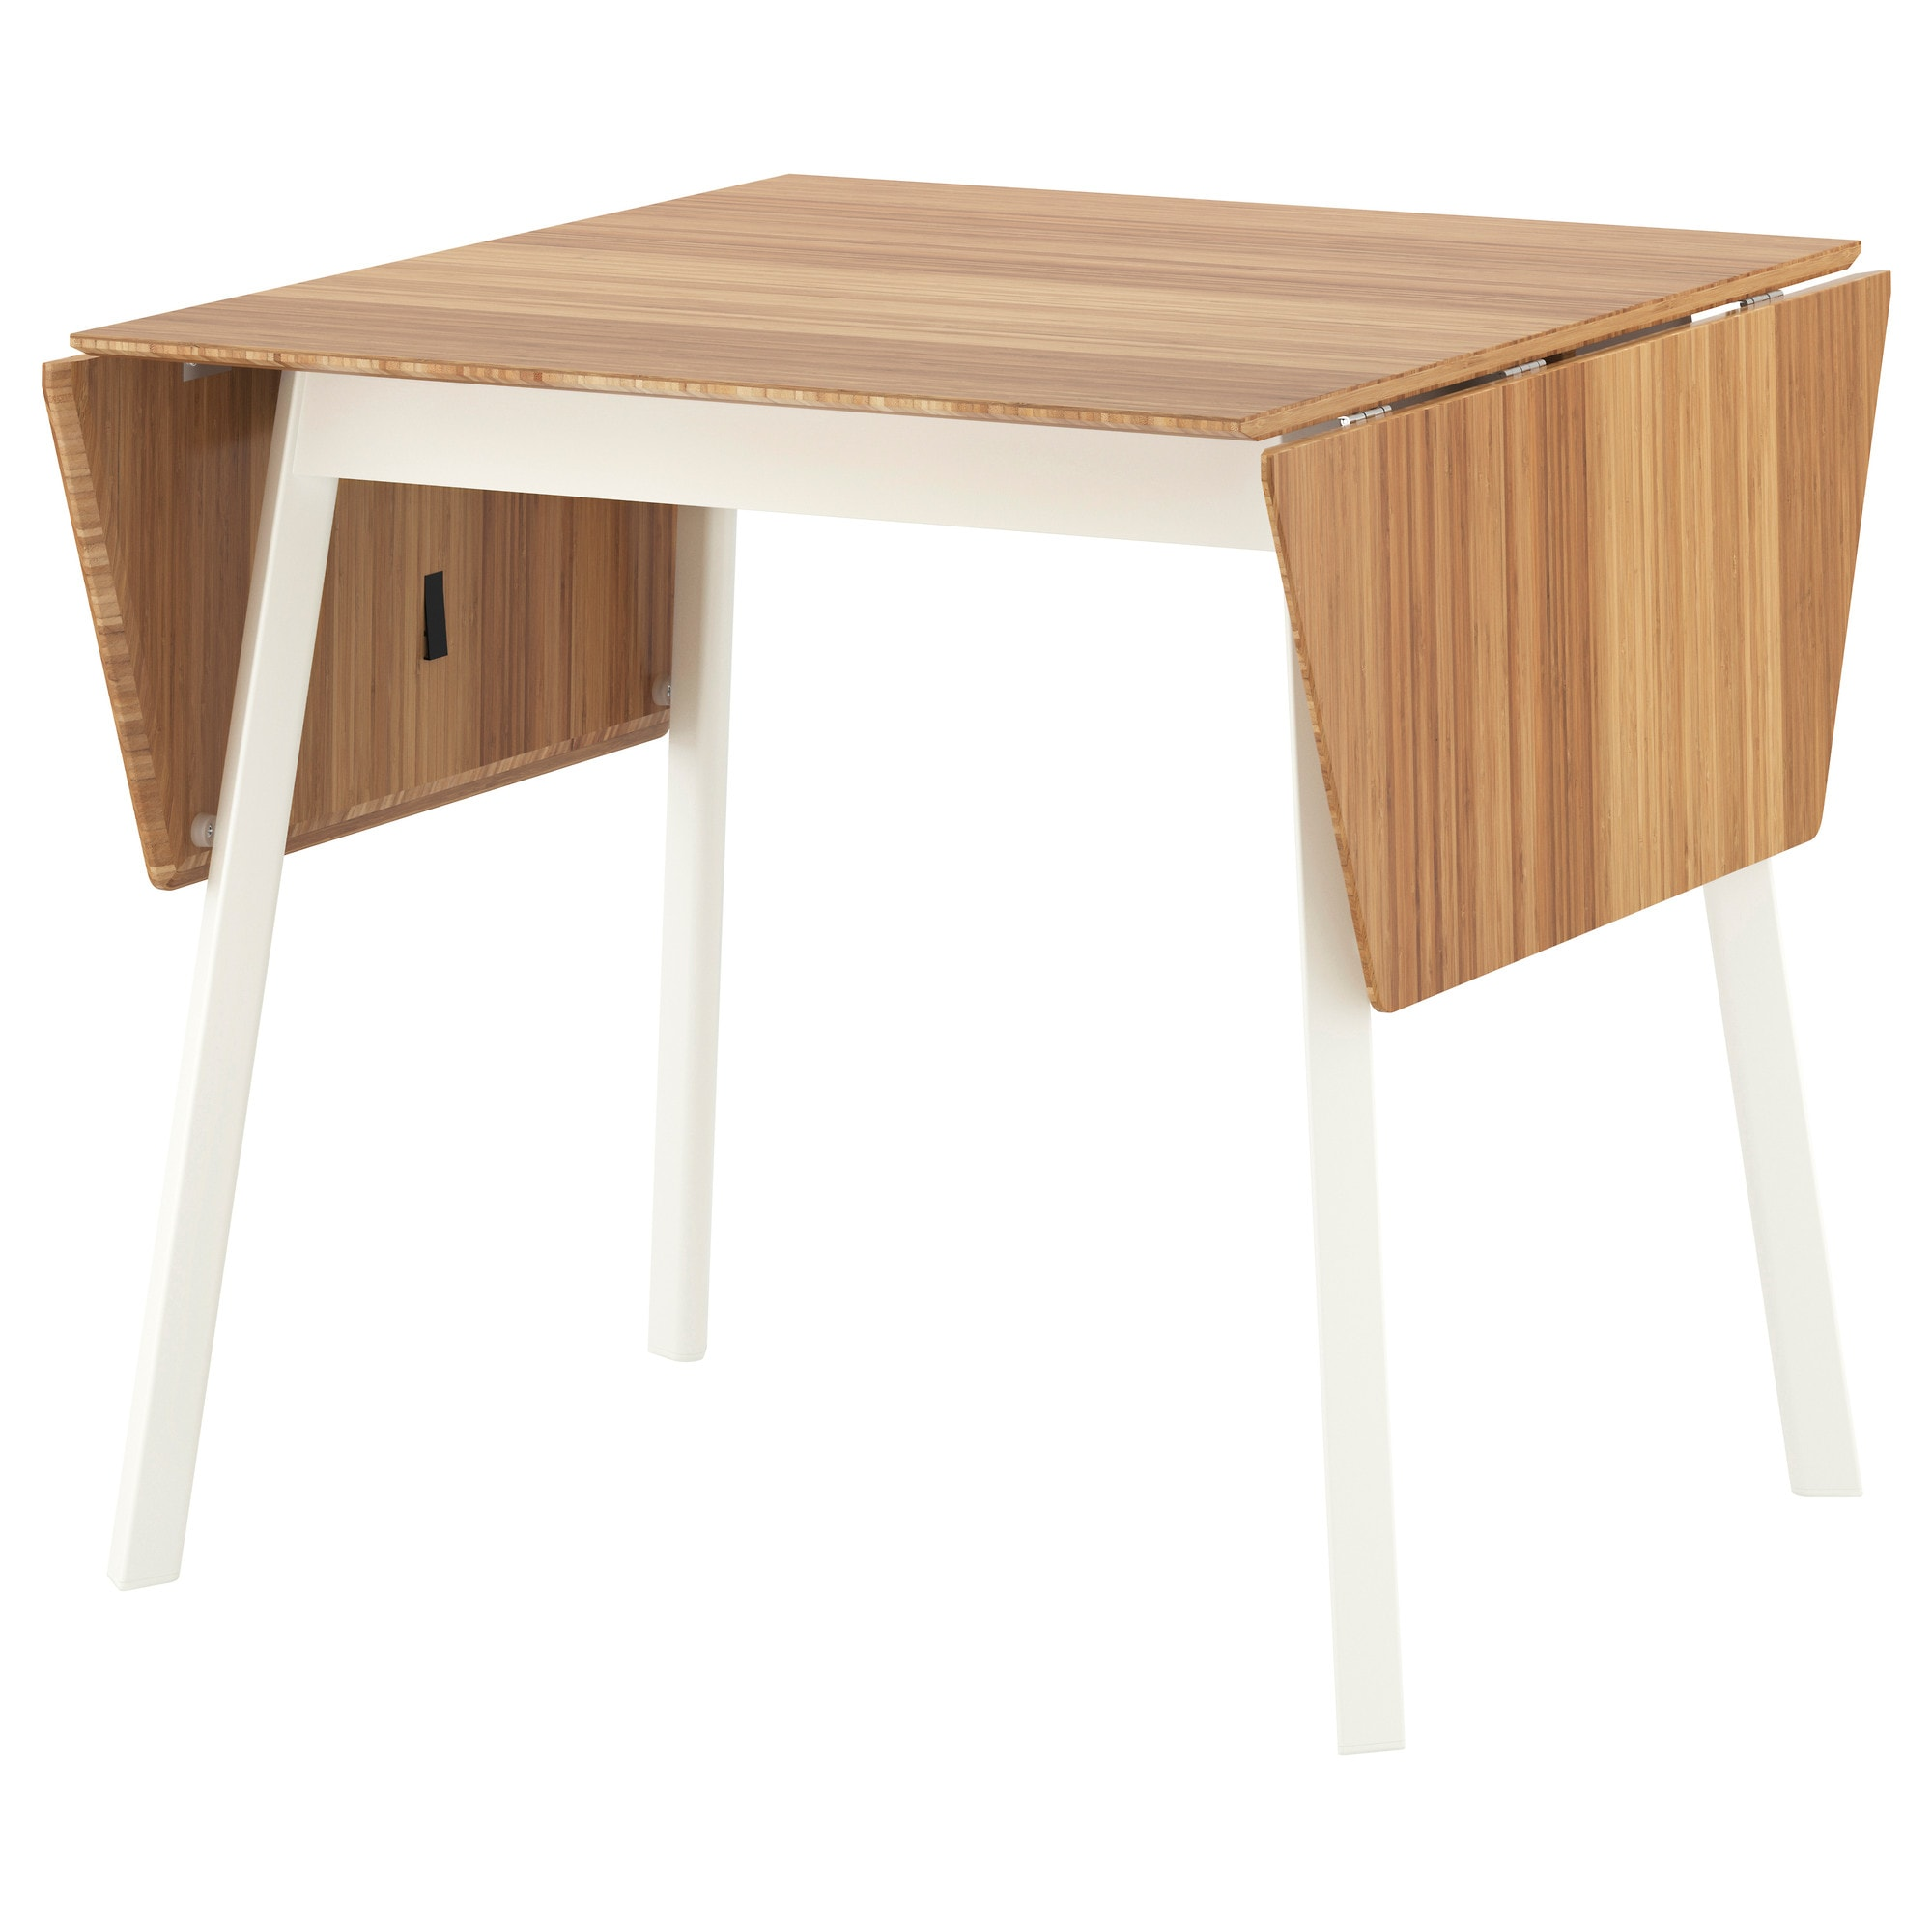 Ikea Folding Dining Table ikea ps 2012 drop-leaf table - ikea